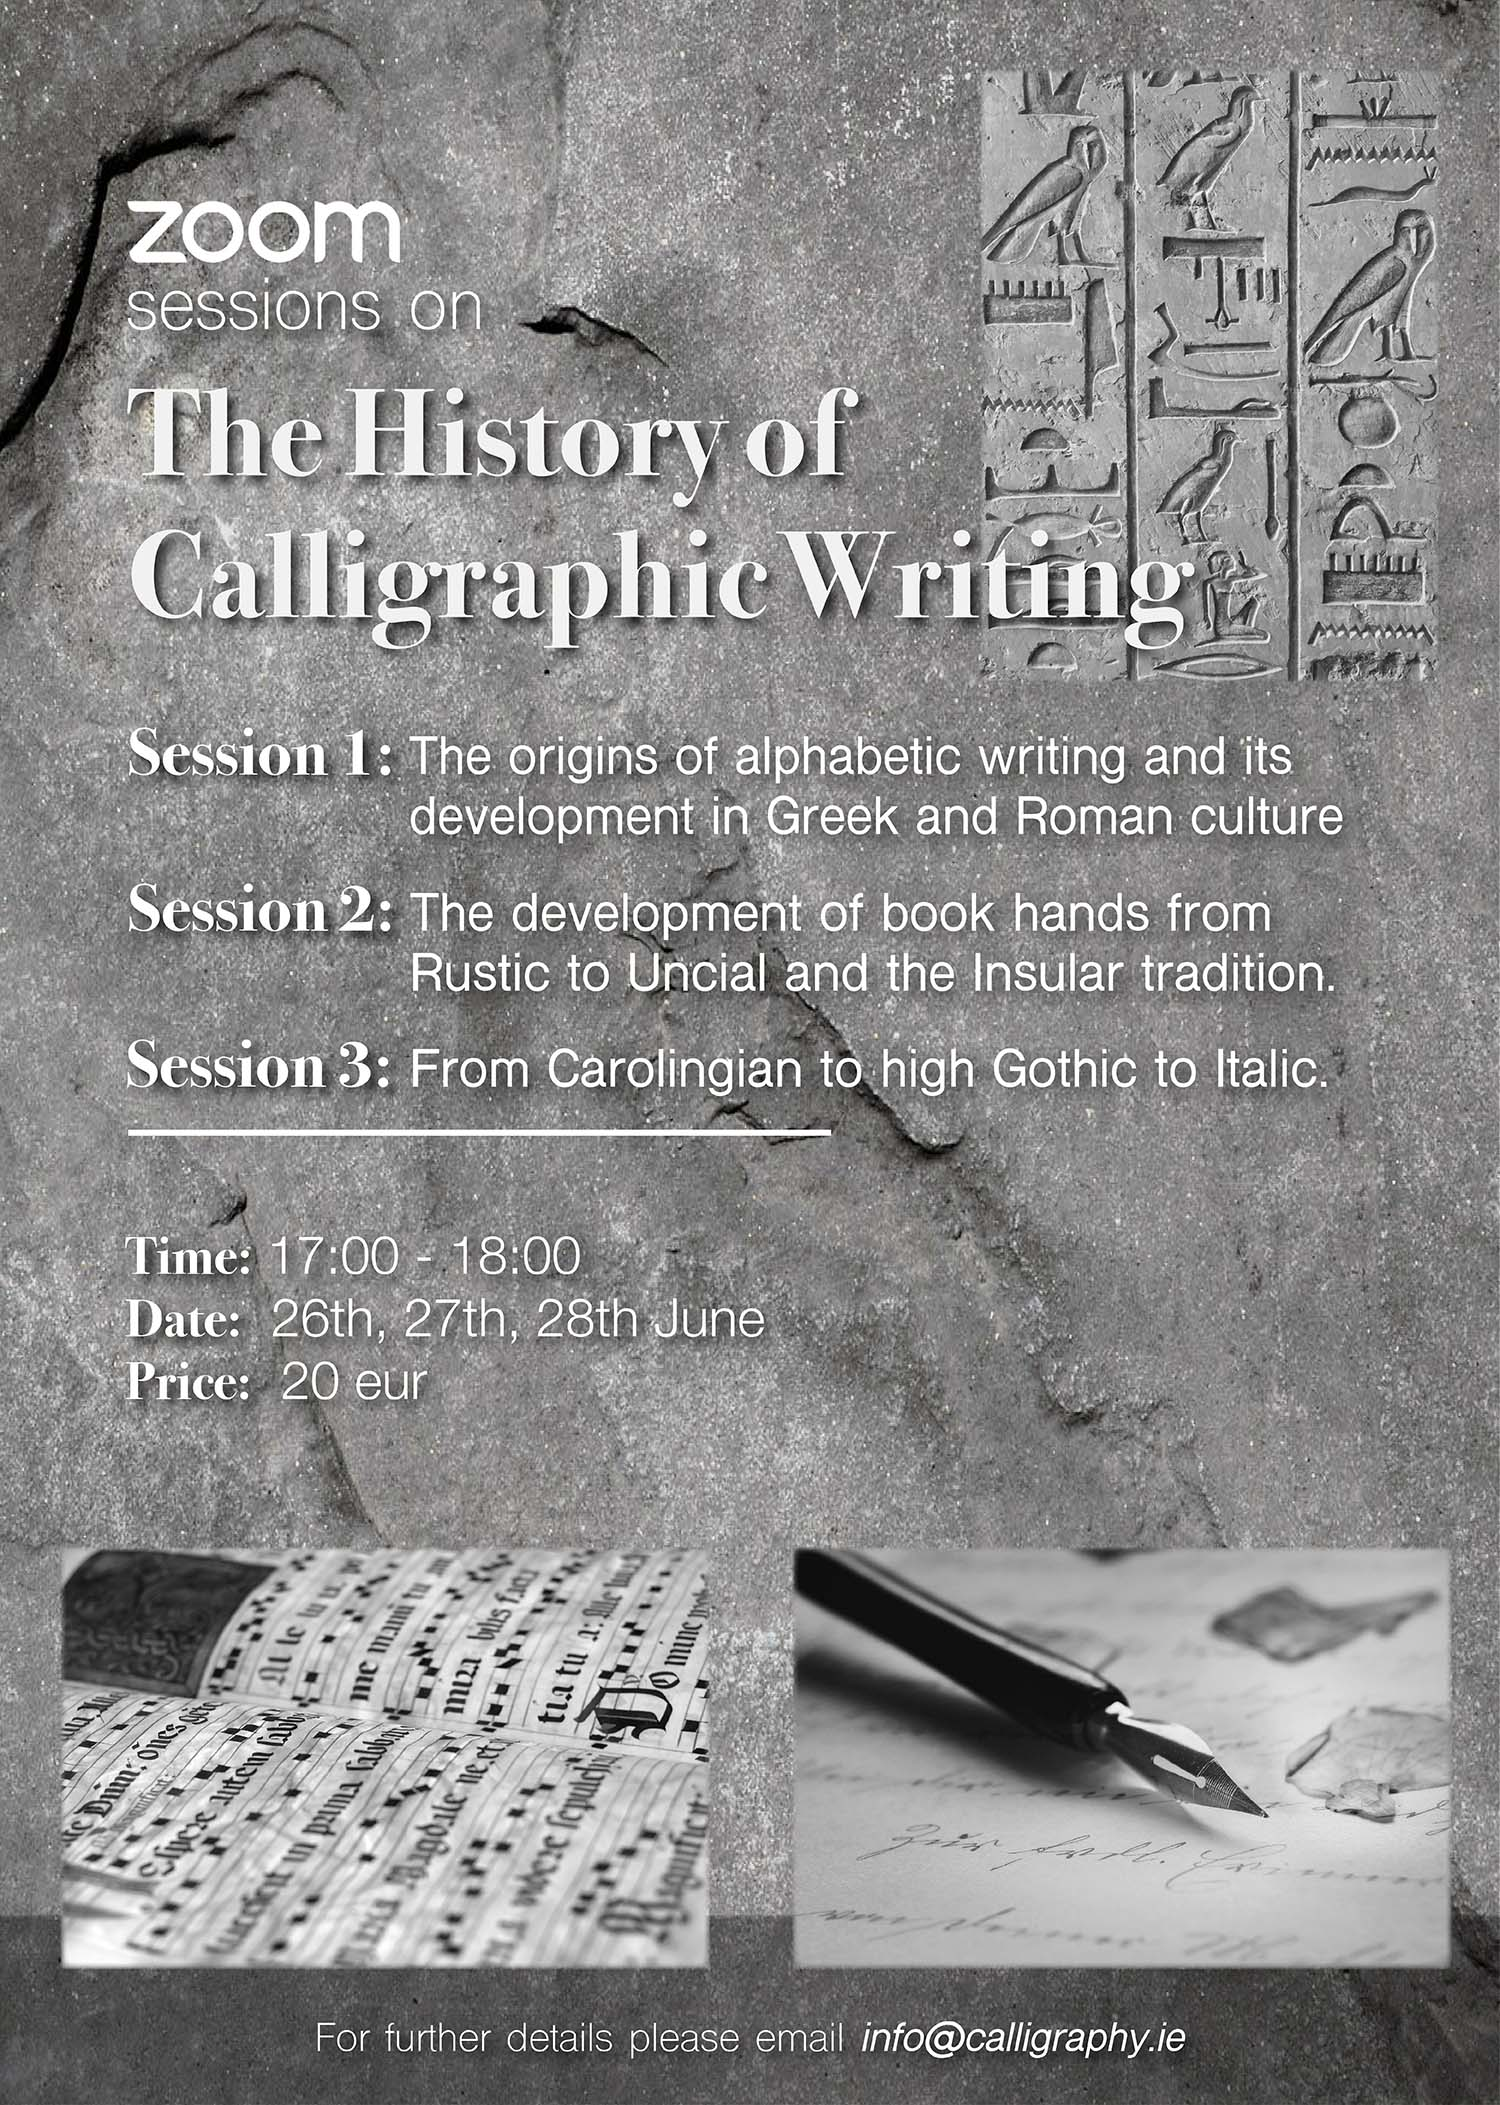 The History of Calligraphic Writing